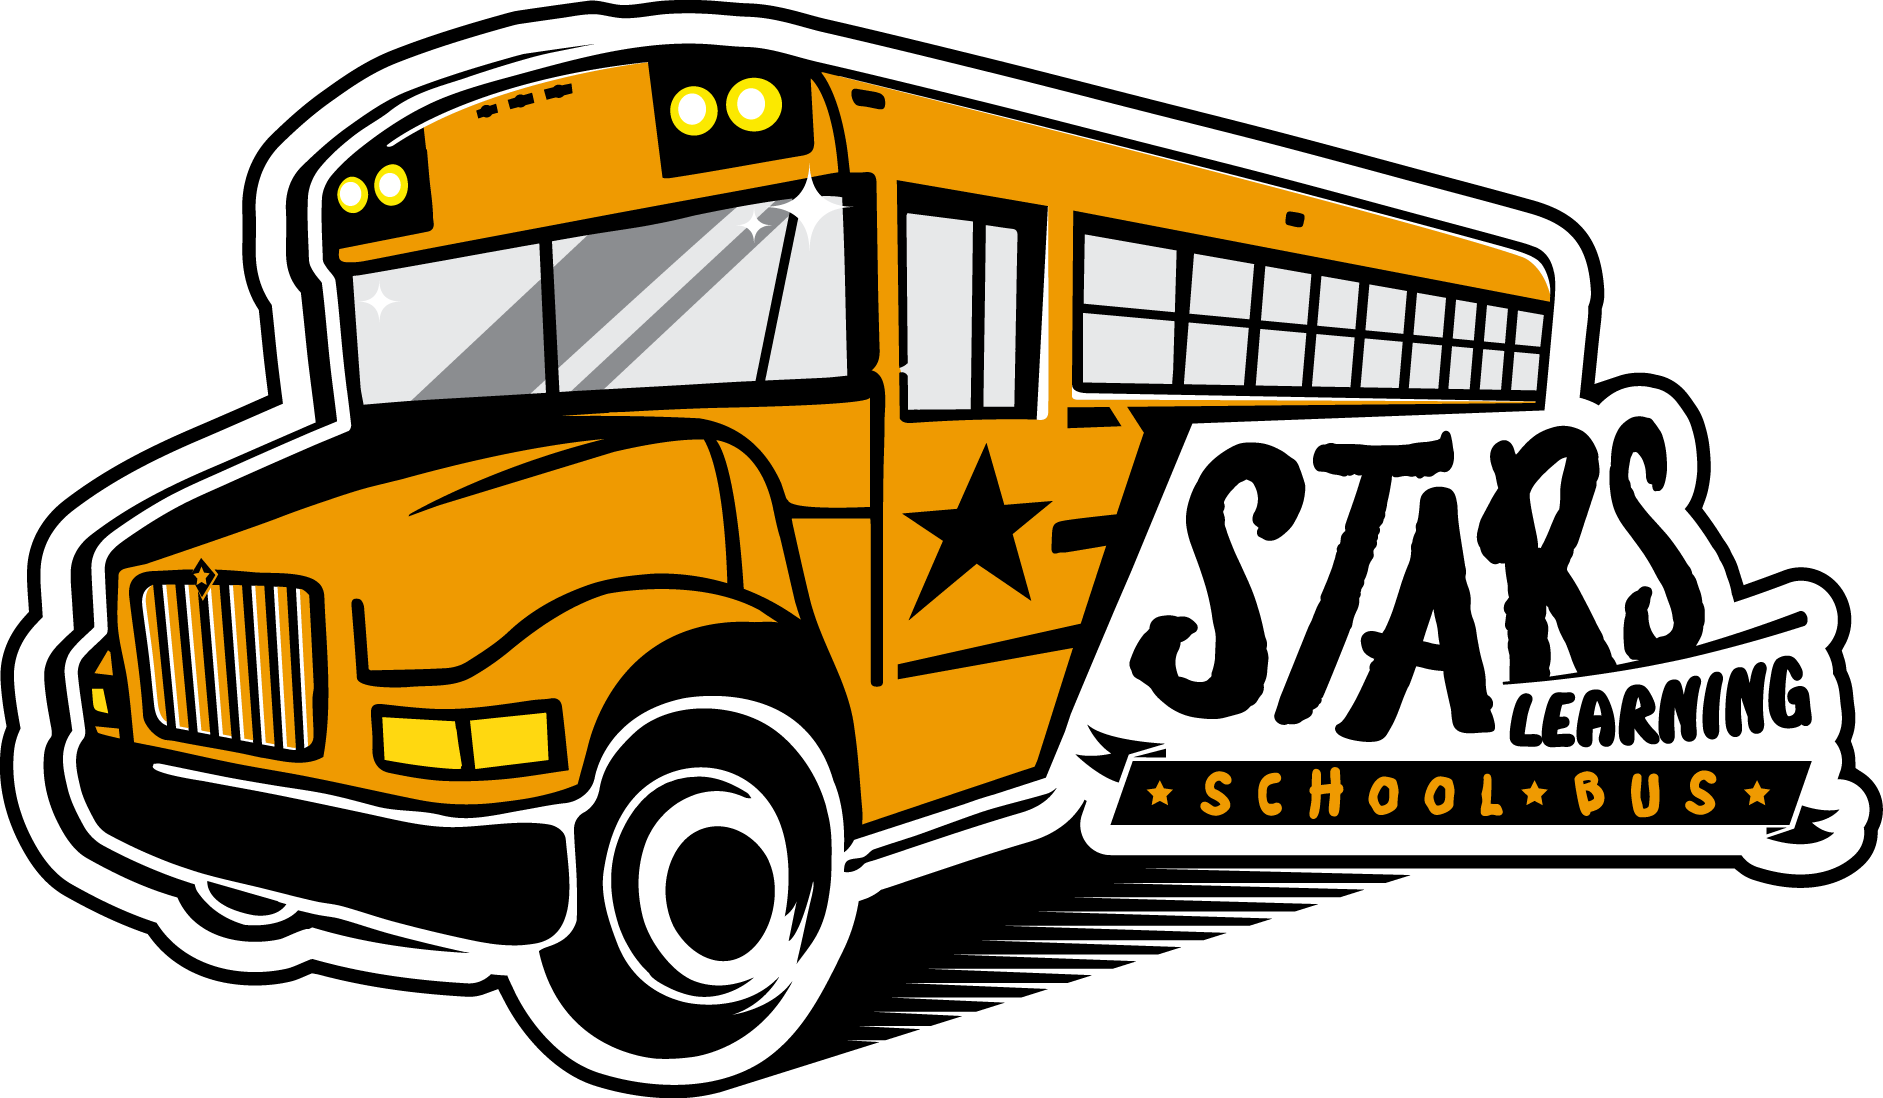 School bus safety clipart png black and white Stars Learning School Bus png black and white